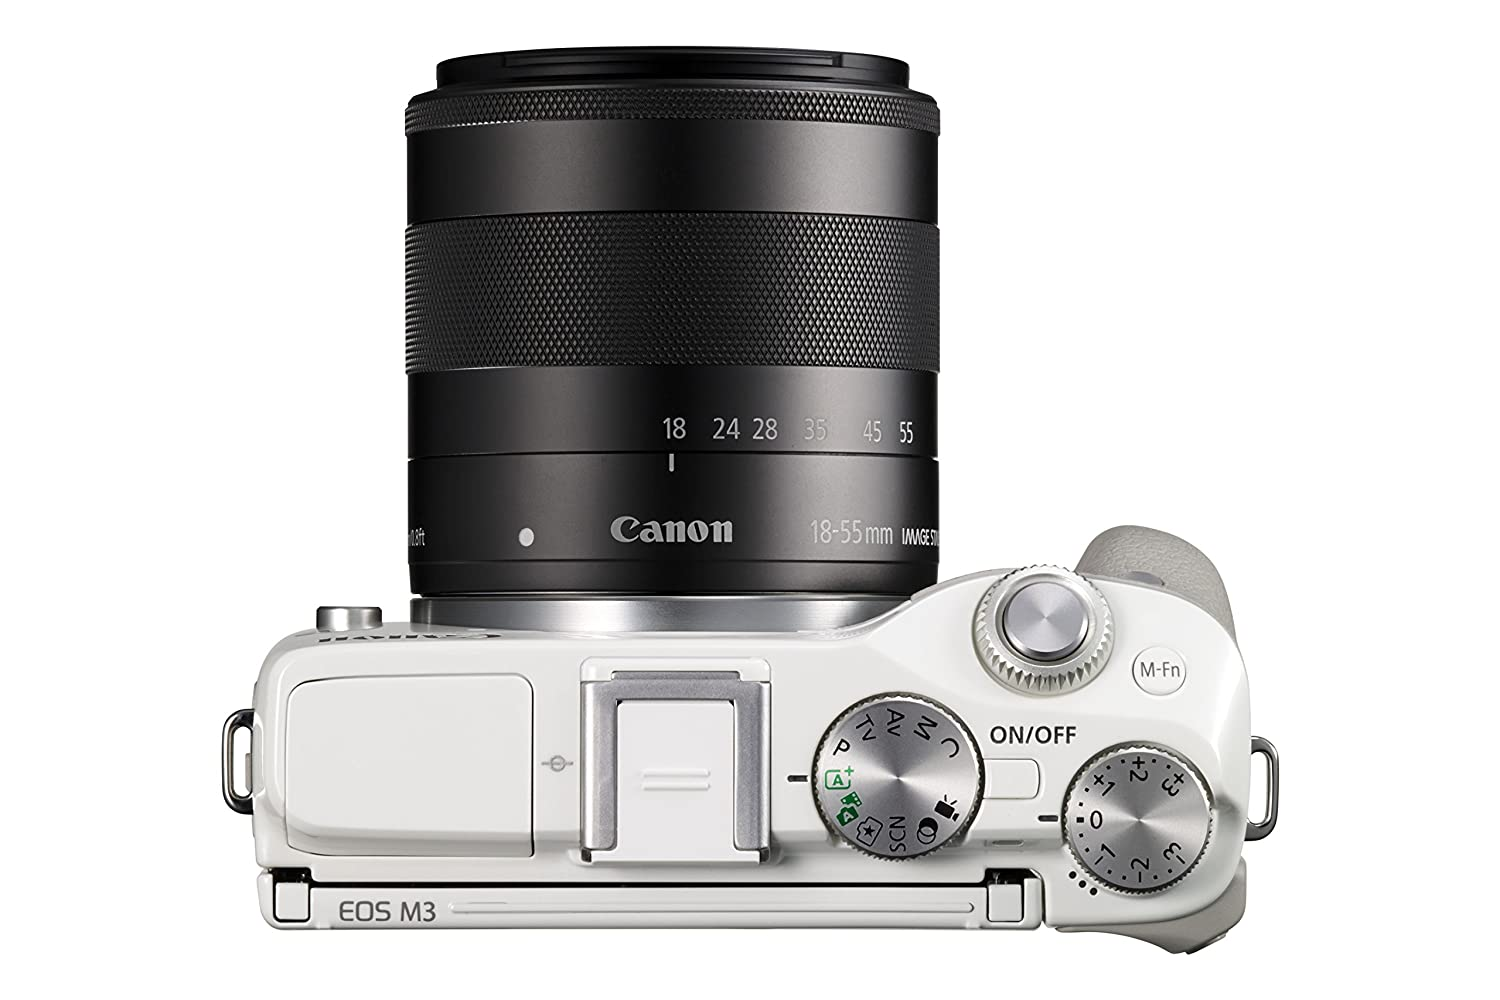 Canon Eos M3 Mirrorless Camera Kit With Ef M 18 55mm M15 45mm Kamera Image Stabilization Is Stm Lens Wi Fi Enabled White Photo